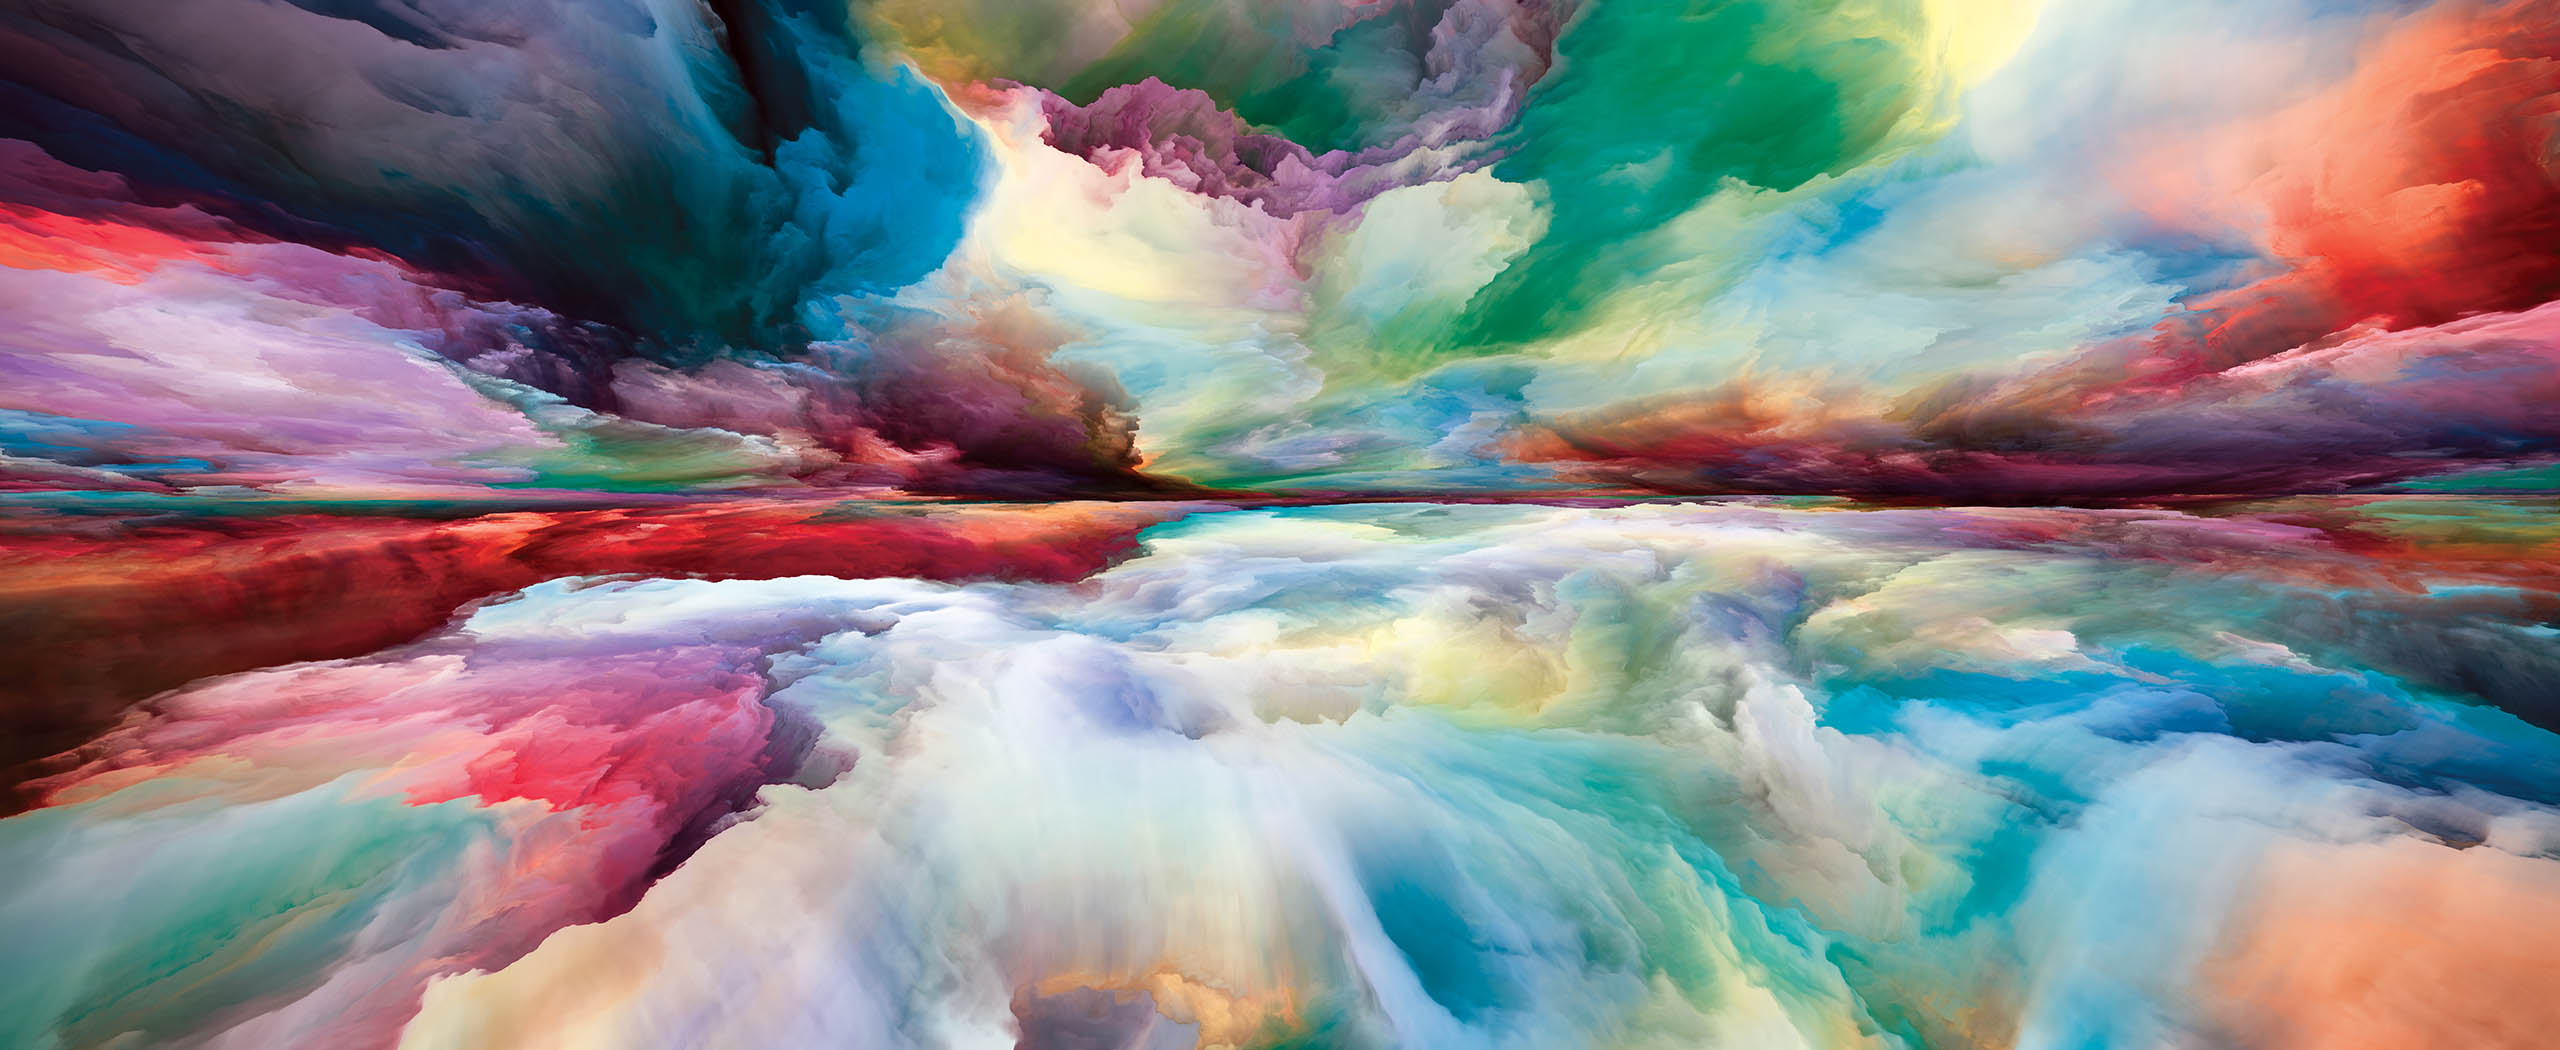 Painting of colorful clouds